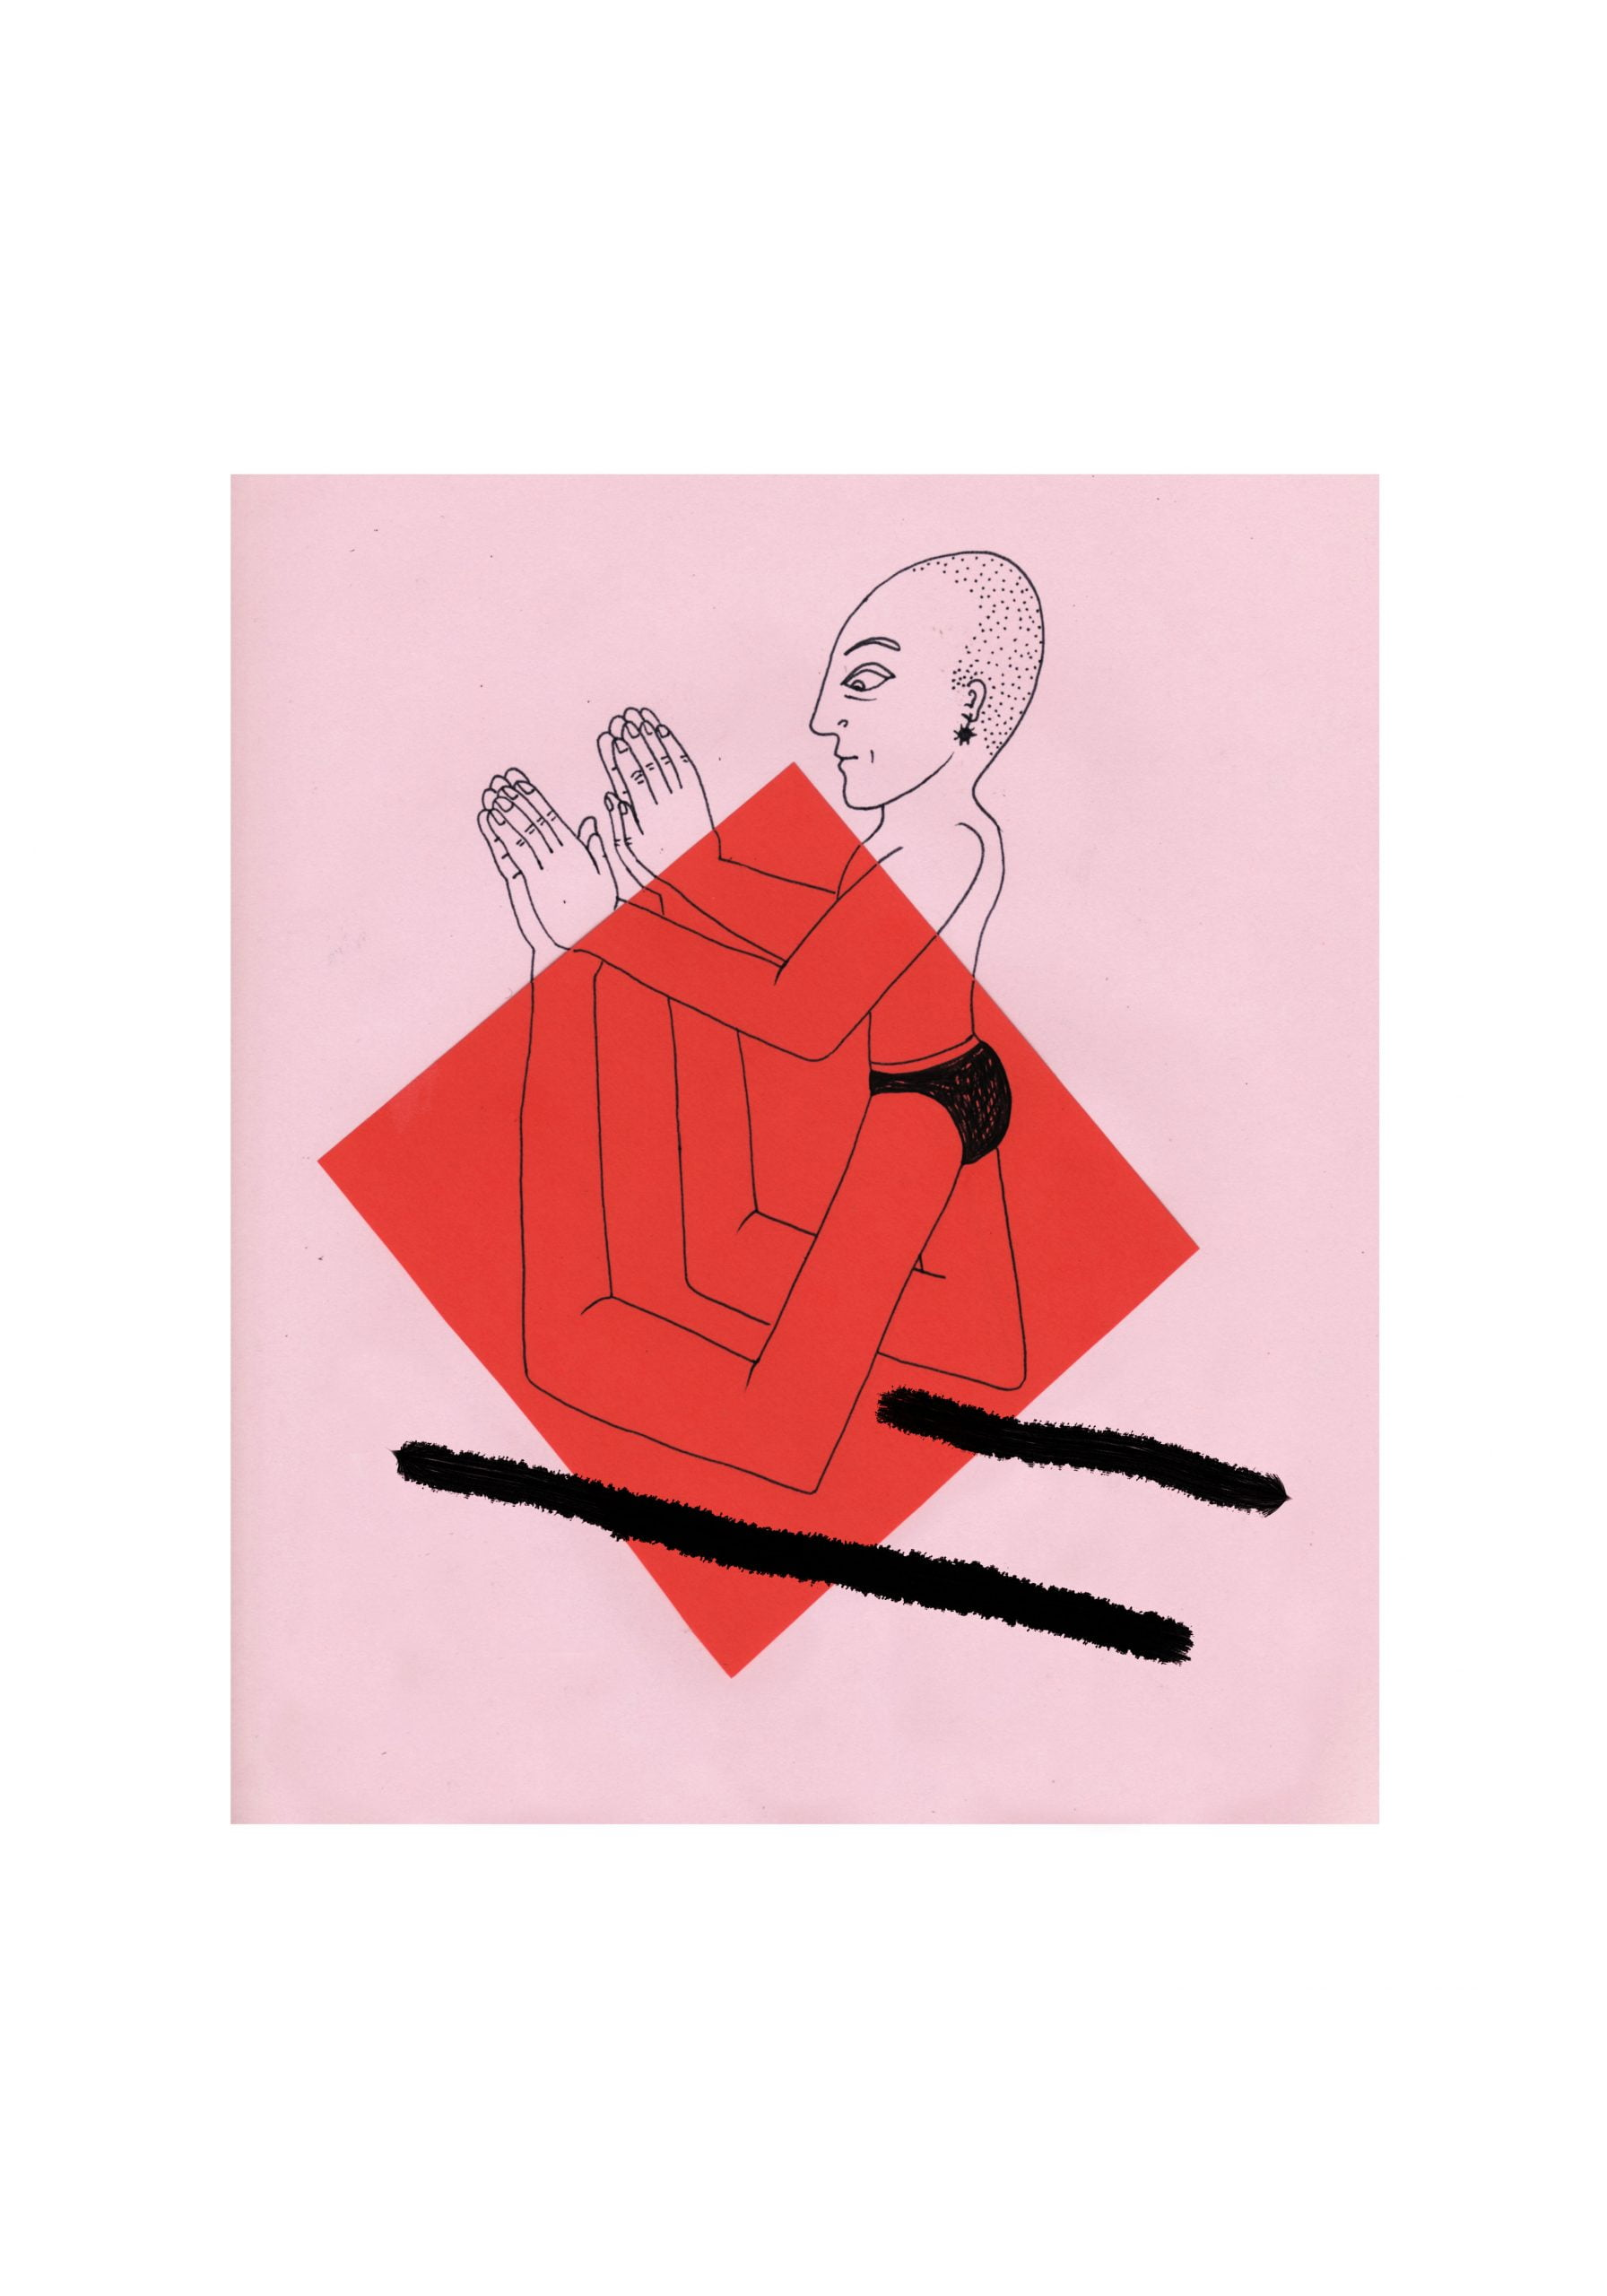 A bald figure wearing black briefs stands upright. Their legs touch the floor, and then rise up out the ground again to become hands. A red diamond sits behind most of this figure. Two thick black lines point away from the legs of the figure. A pink square with a thick white edge contains this drawing.